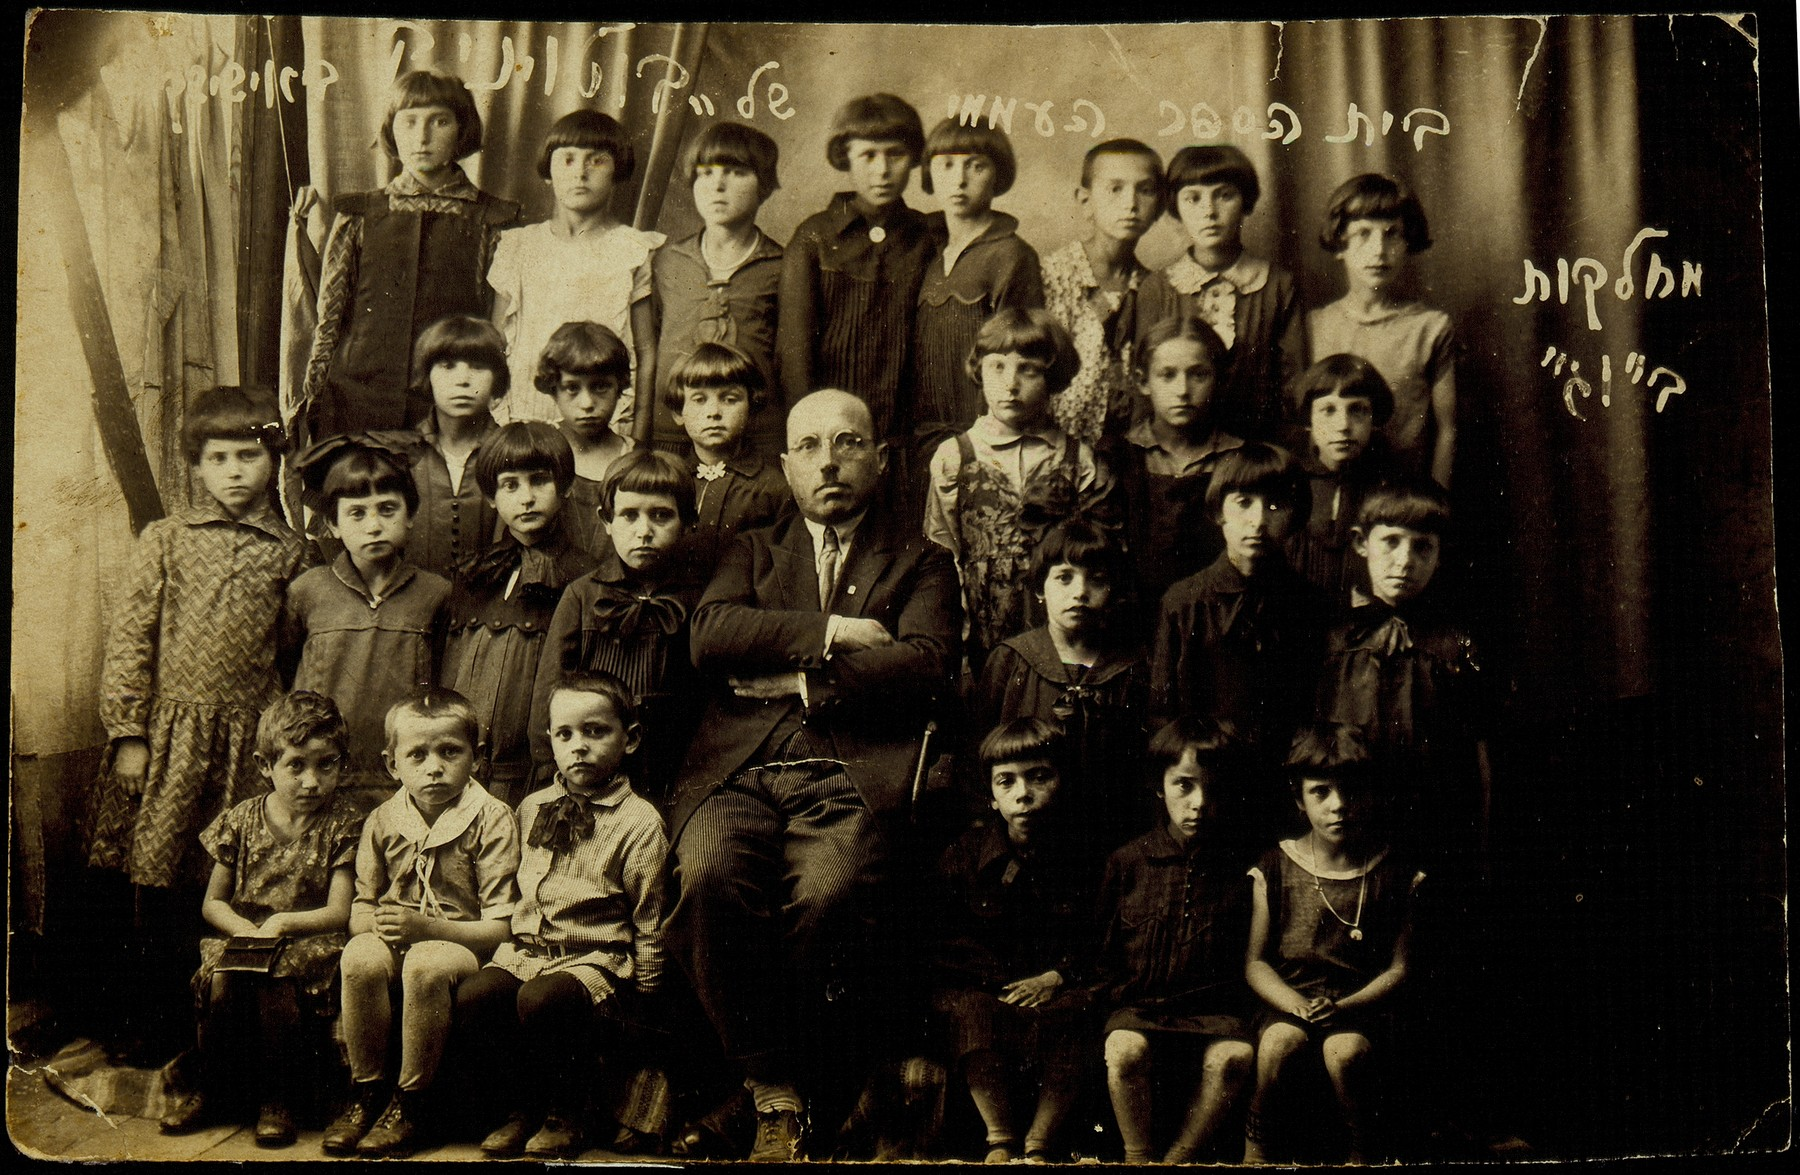 Elementary school class photo in Eisiskes.    Seated in the center is the principal Moshe Yaakov Botwinik.